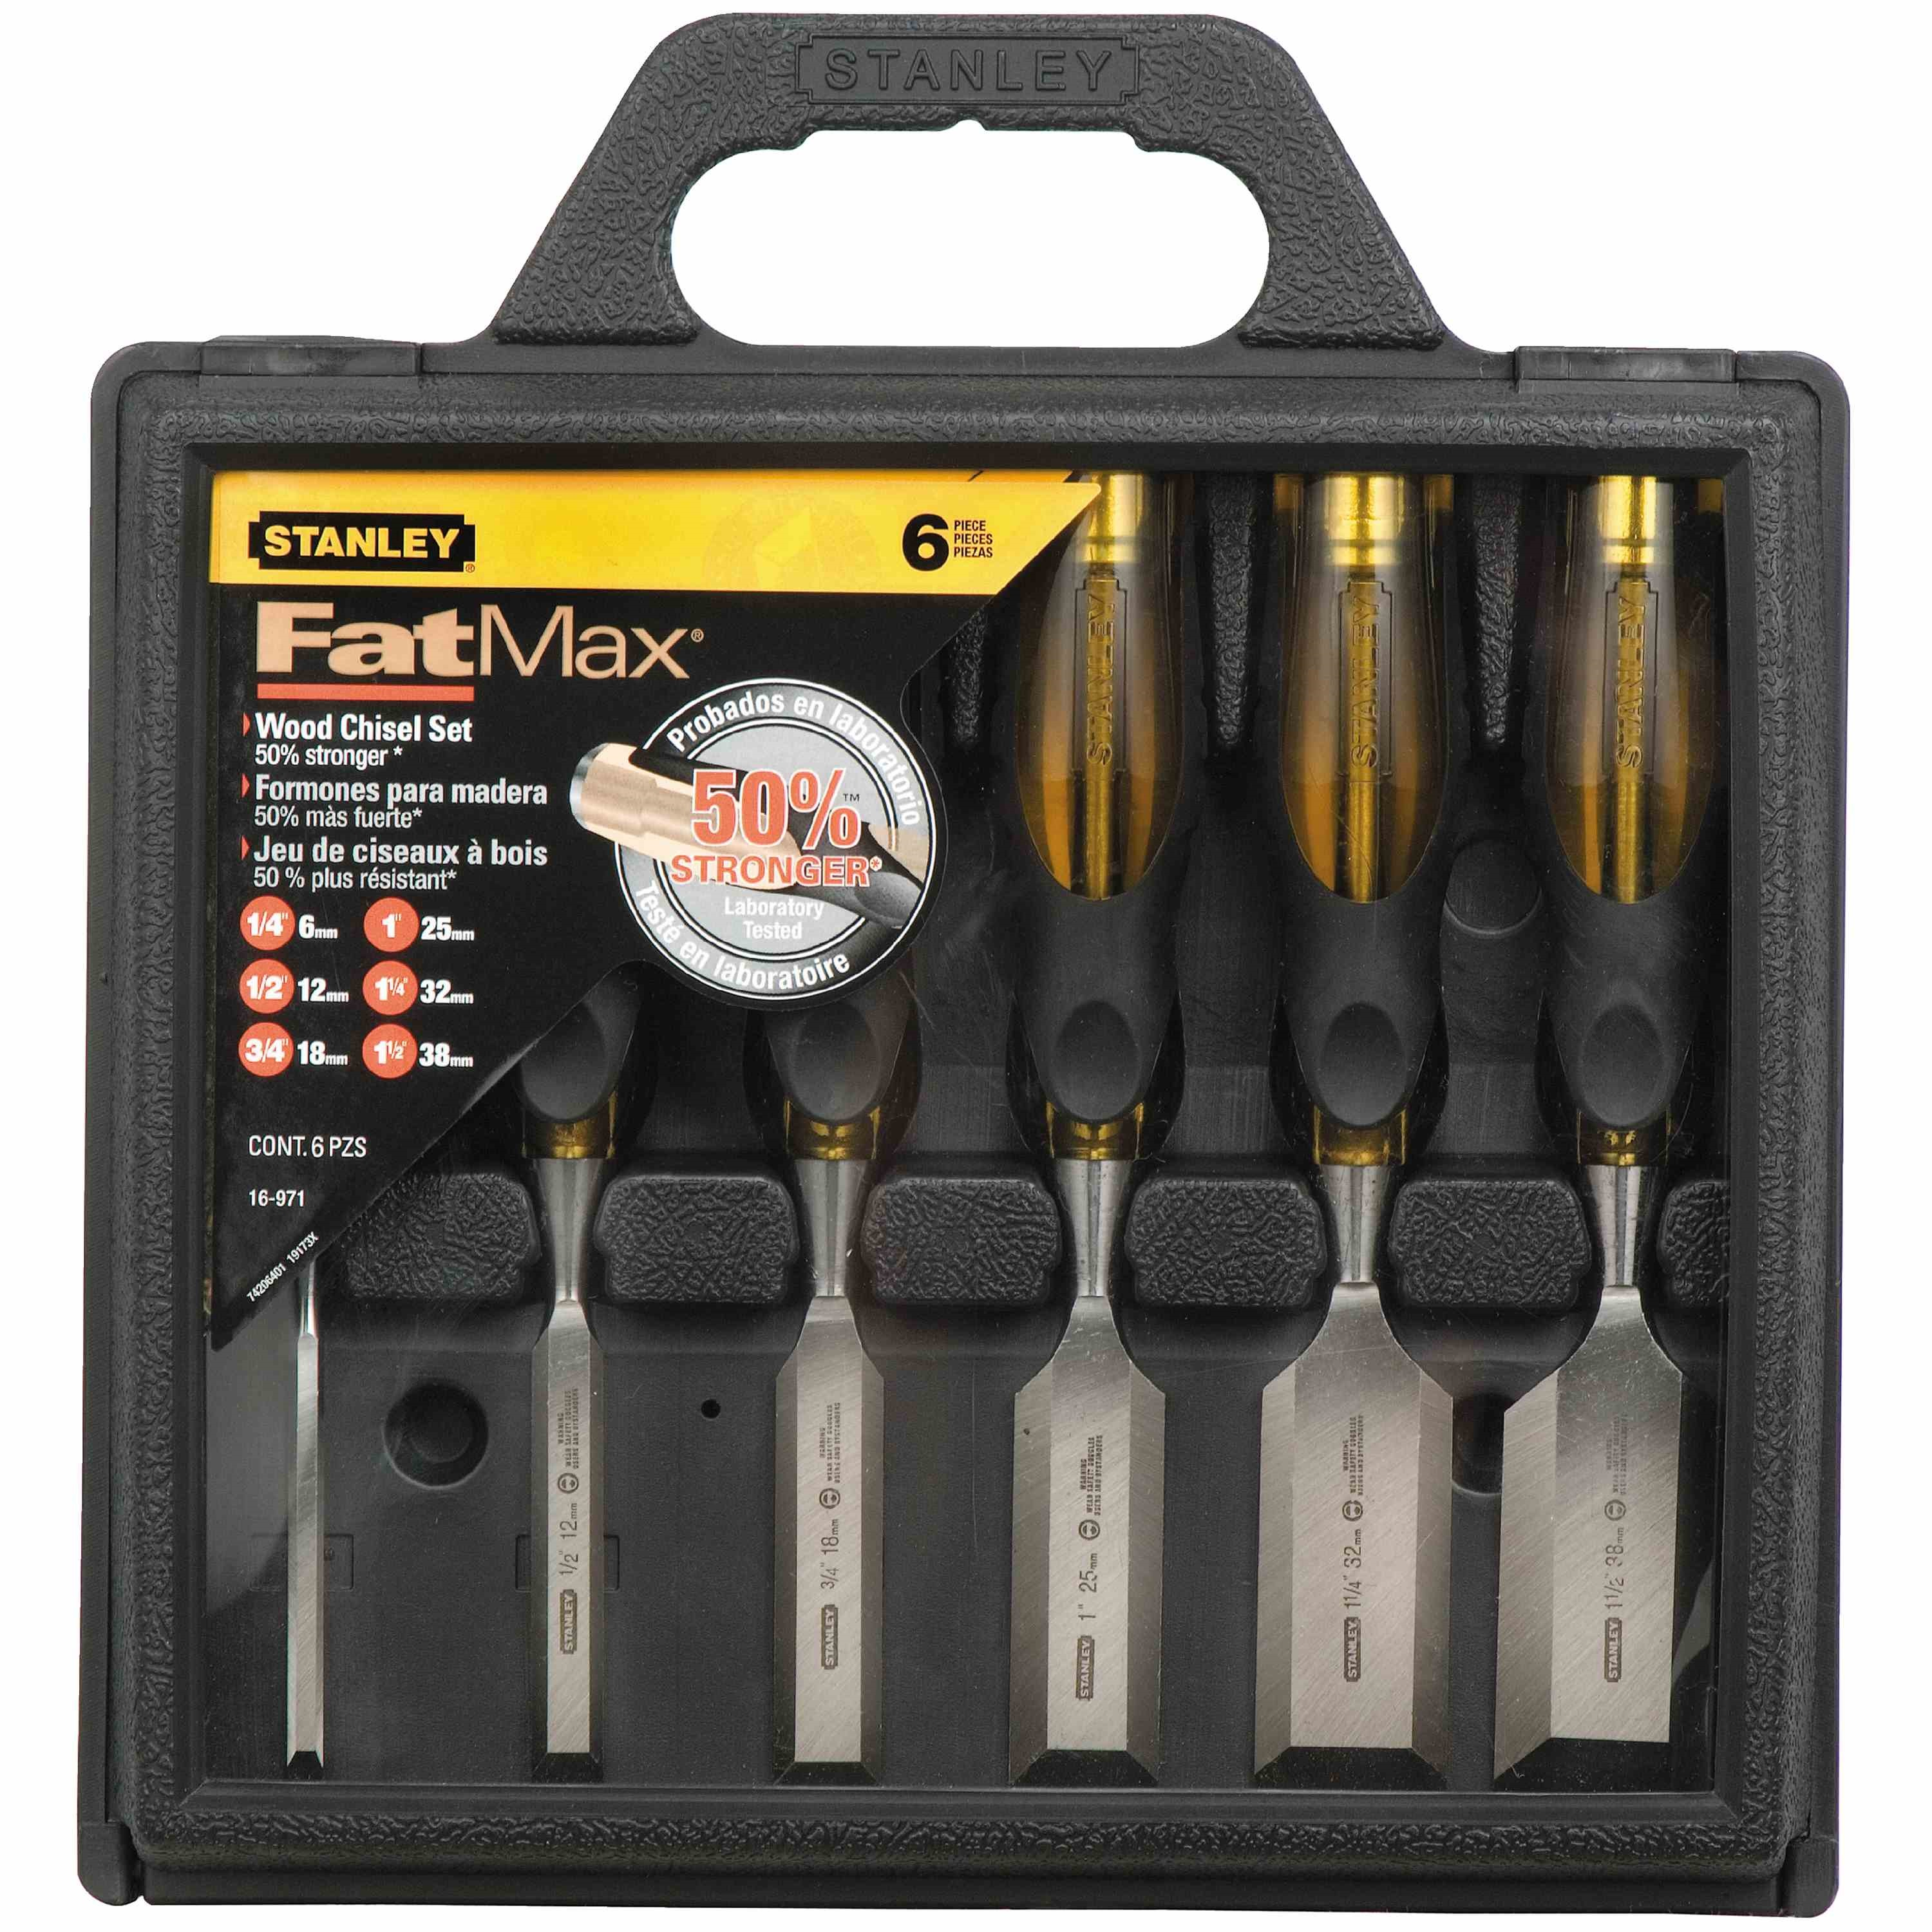 Stanley Tools - 6 pc FATMAX ThruTang Wood Chisel Set - 16-971